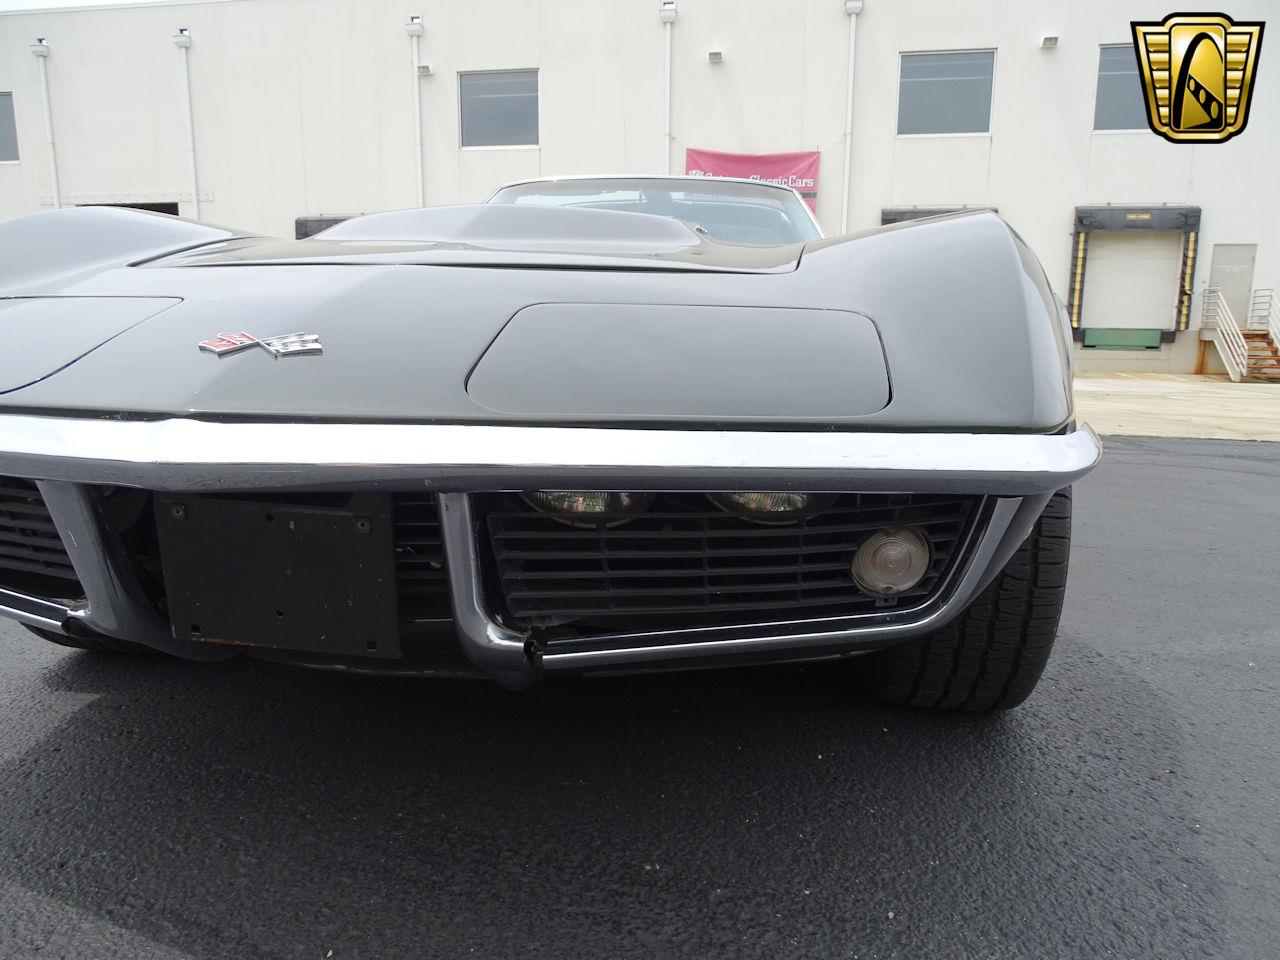 Large Picture of '69 Chevrolet Corvette located in Indianapolis Indiana - $32,595.00 - L6RX